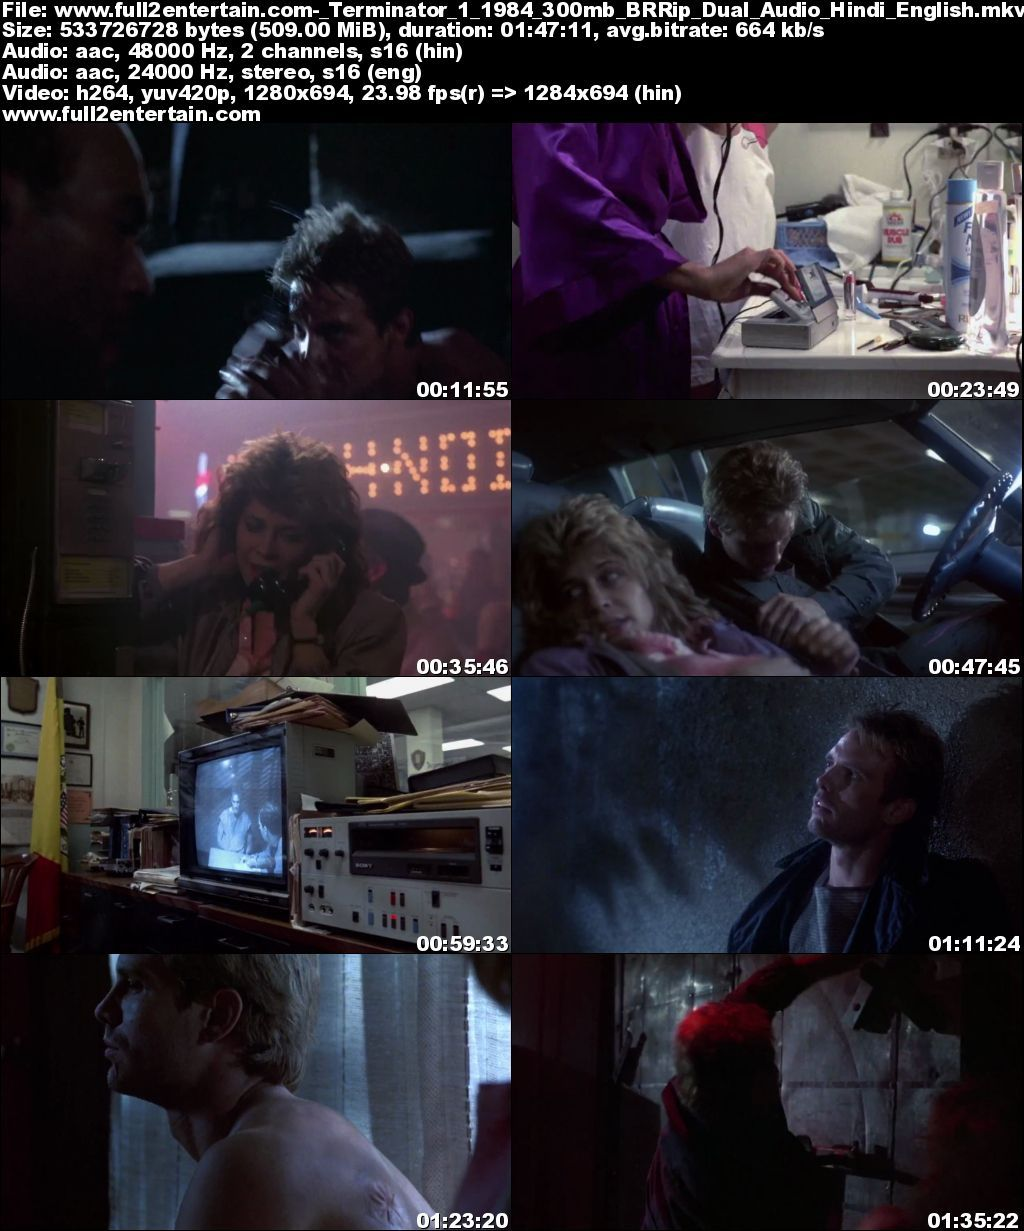 The Terminator 1 (1984) Full Movie Free Download HD 950mb